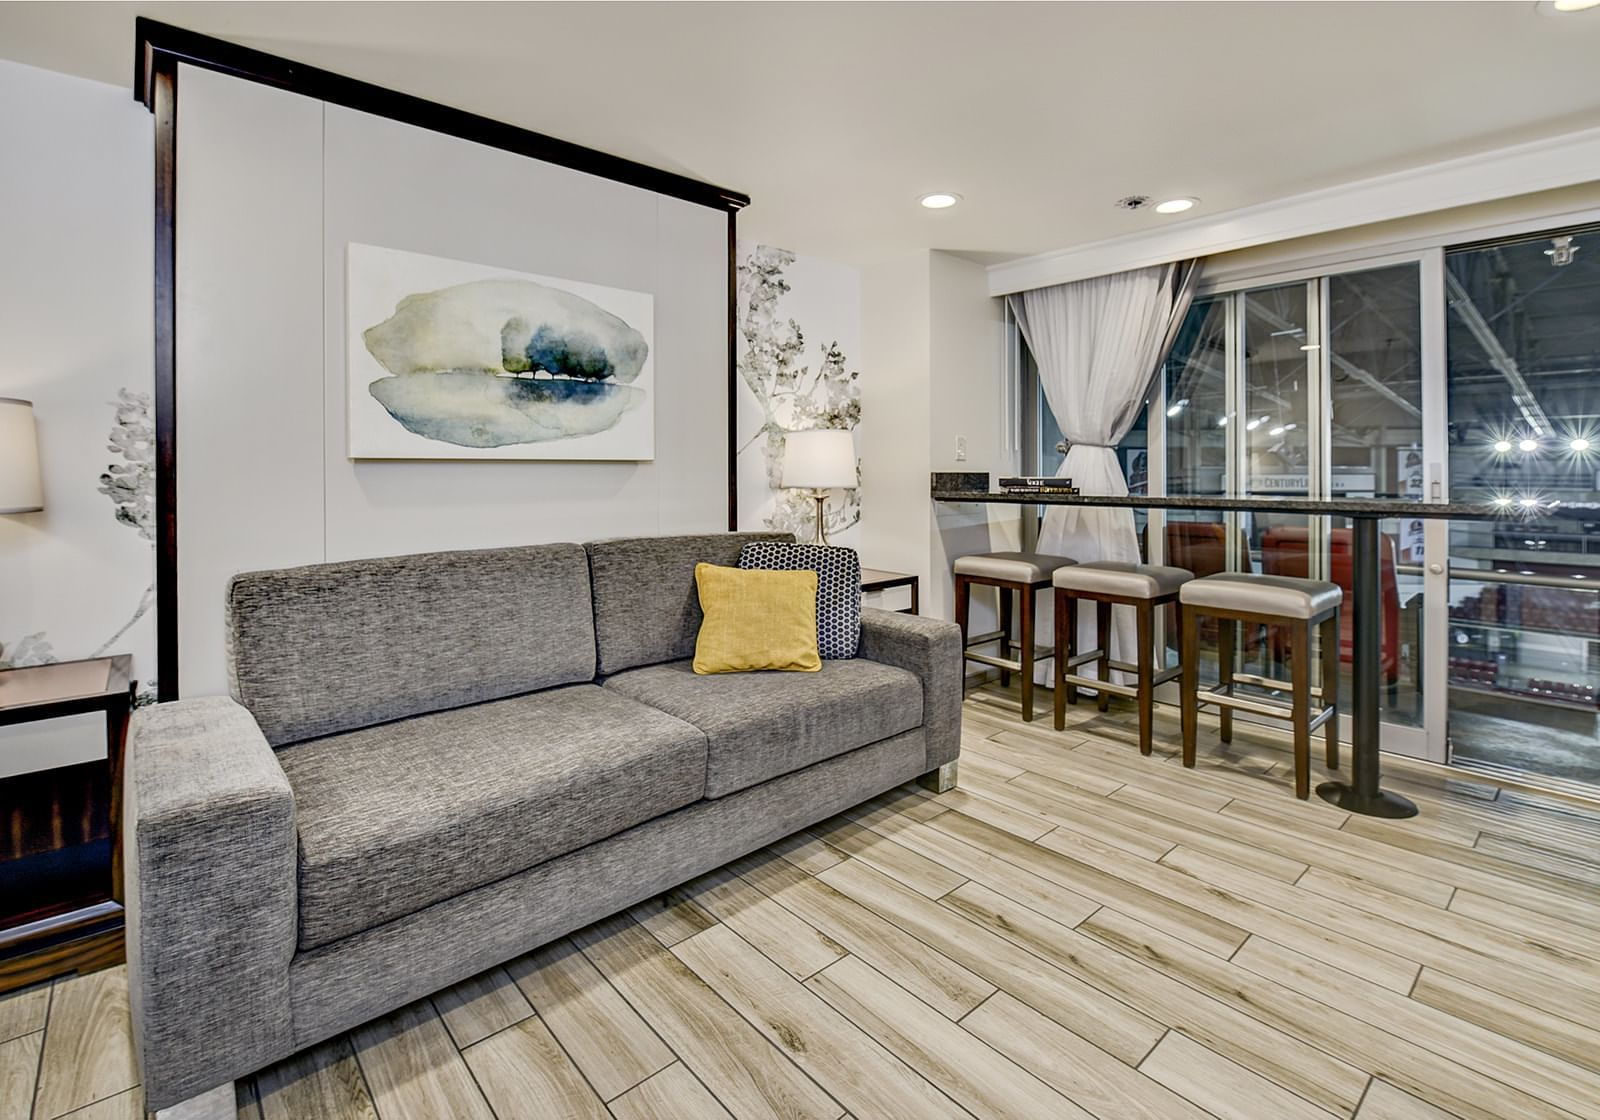 a couch and seating area in a hotel room